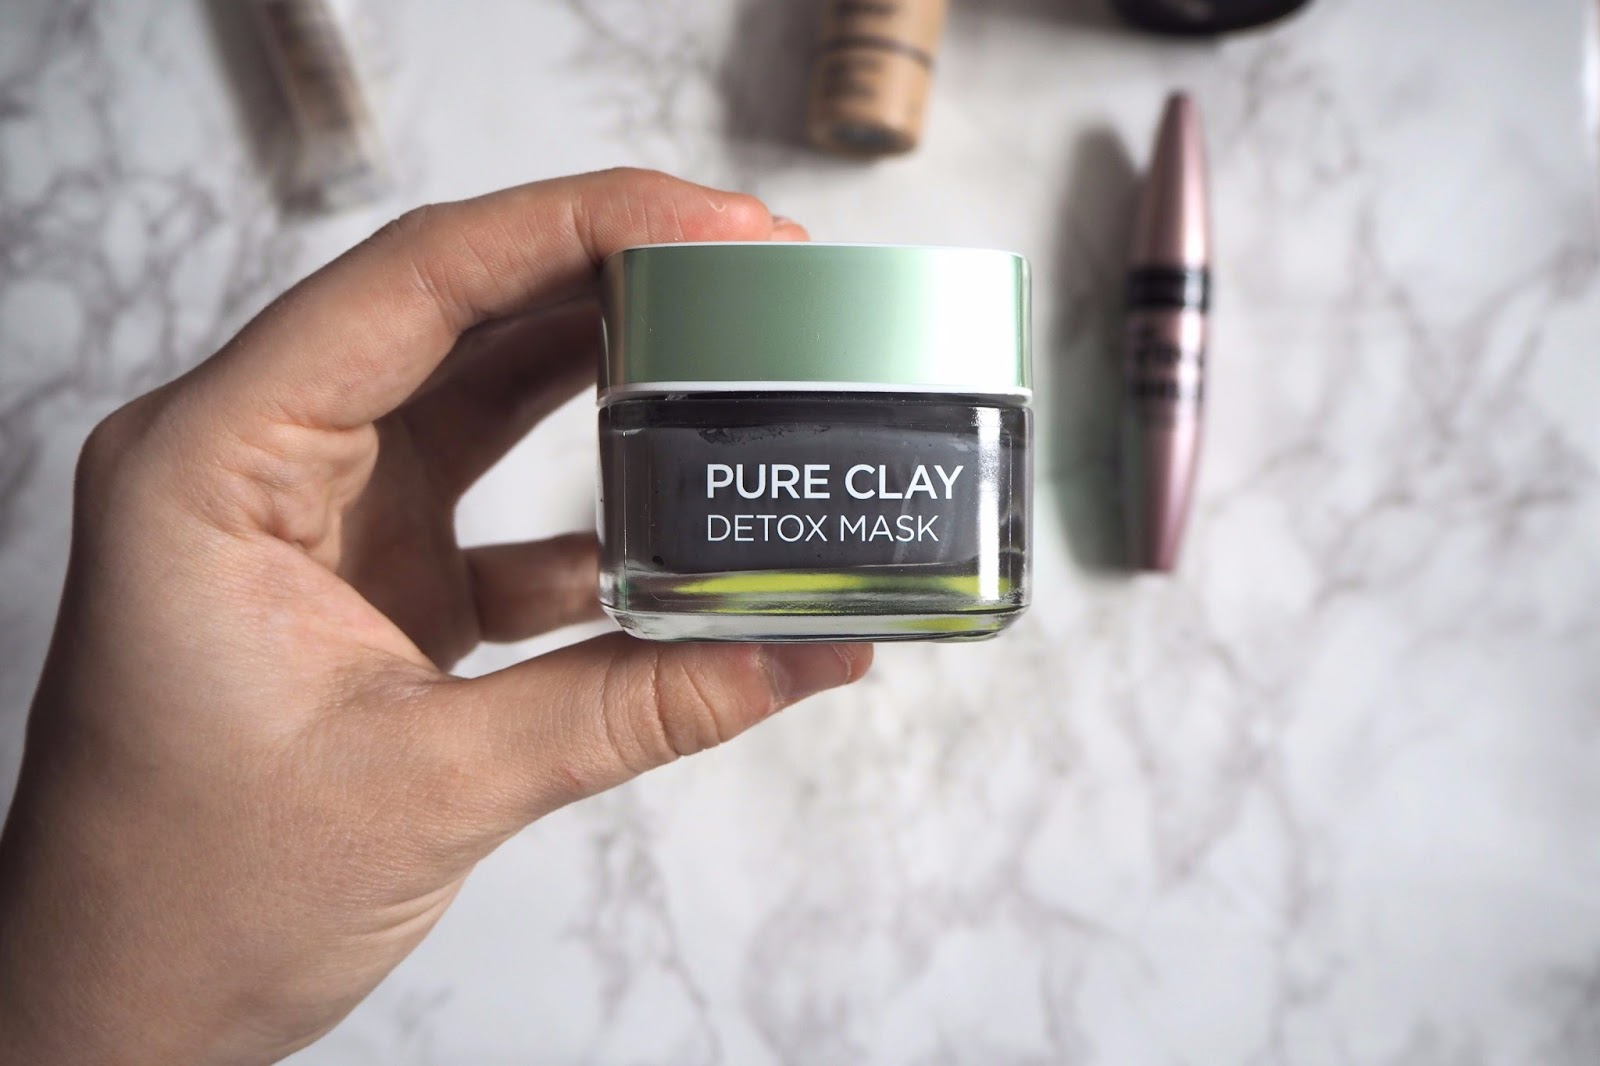 Pure Clay Detox Mask